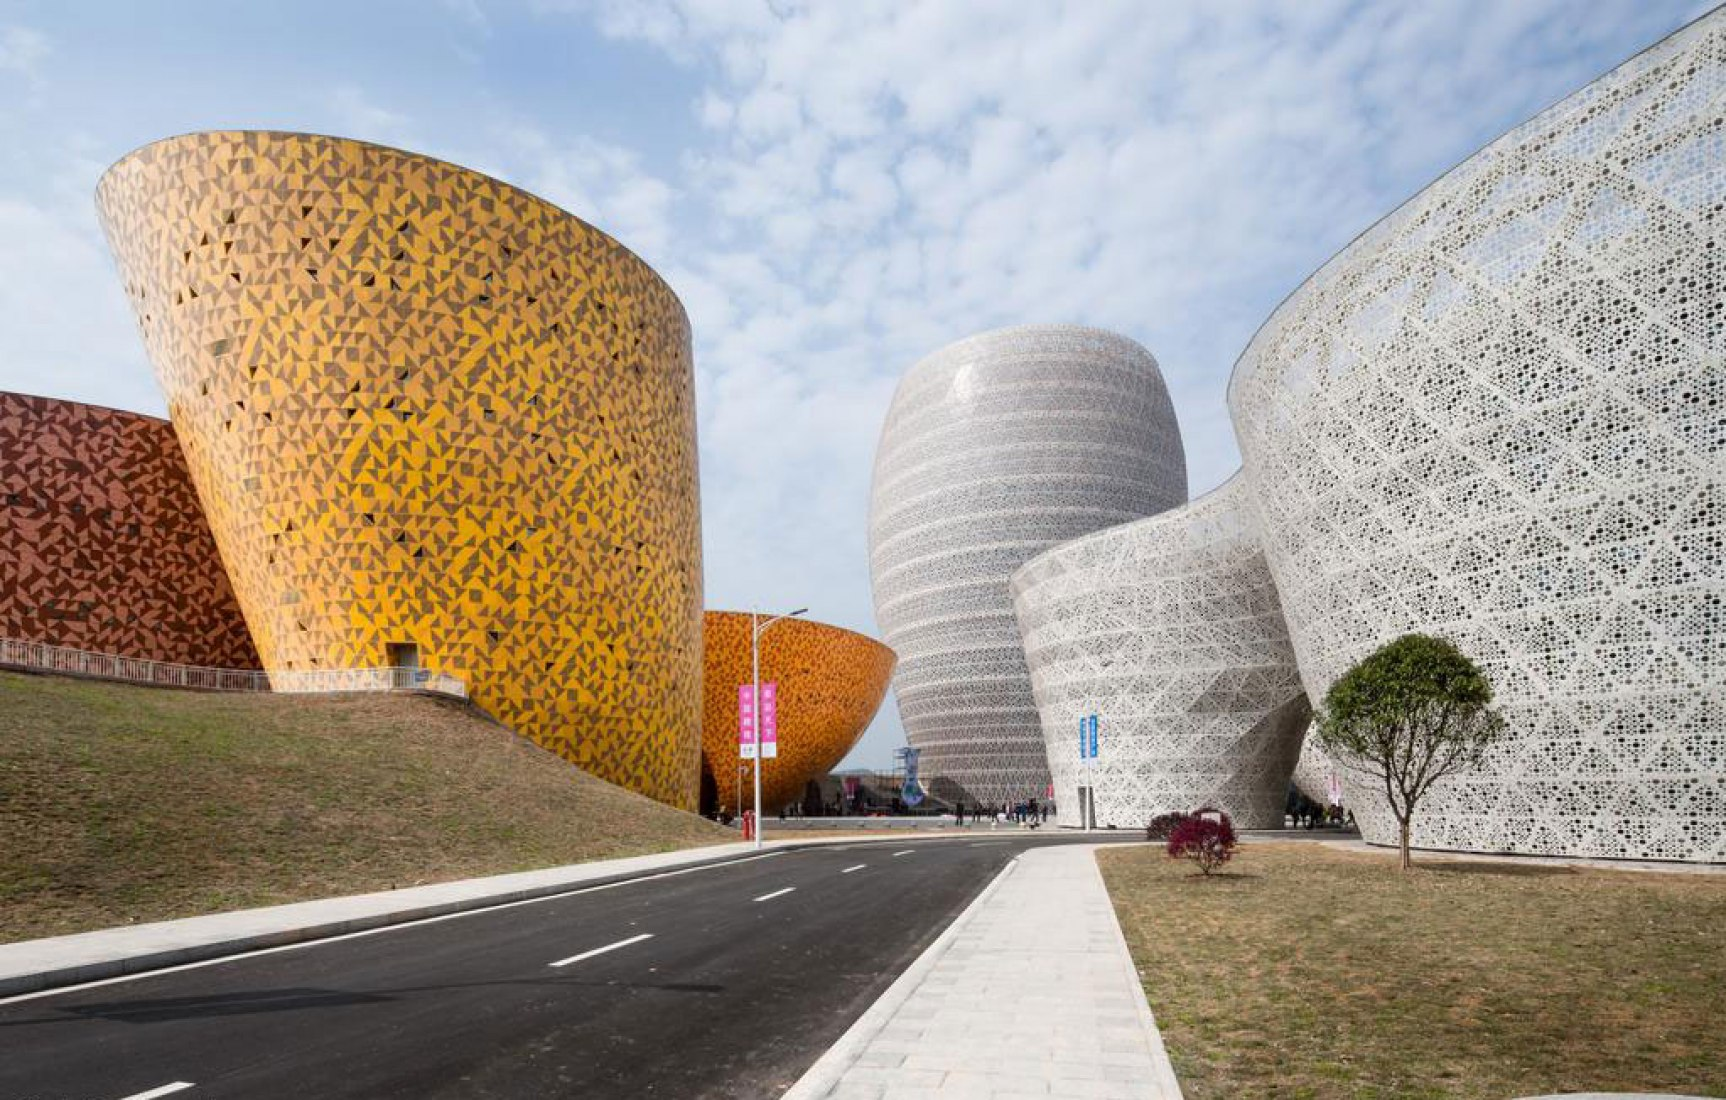 Outside view. Liling World Ceramic Art City by Archea Associati. Photograph © Cristiano Bianchi. Click above to see larger image.